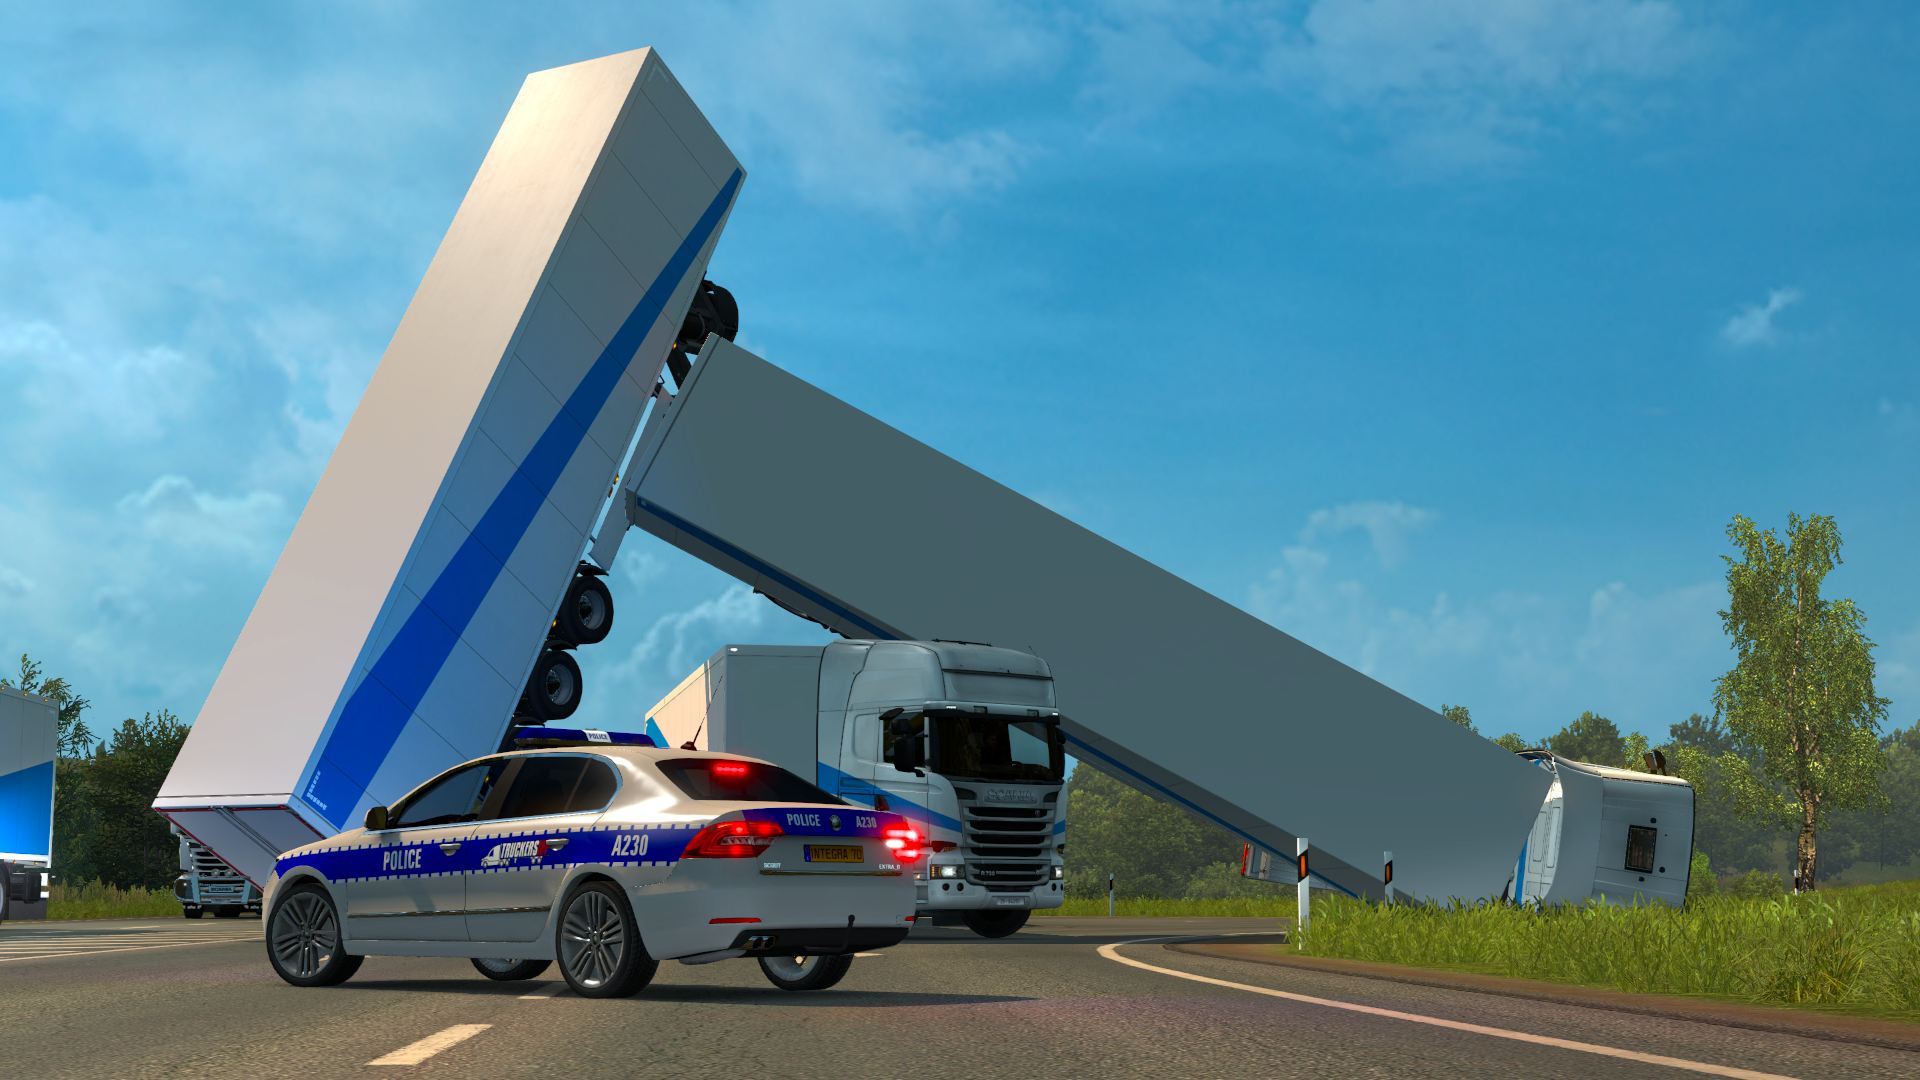 ets2_20200418_215327_00-1.png